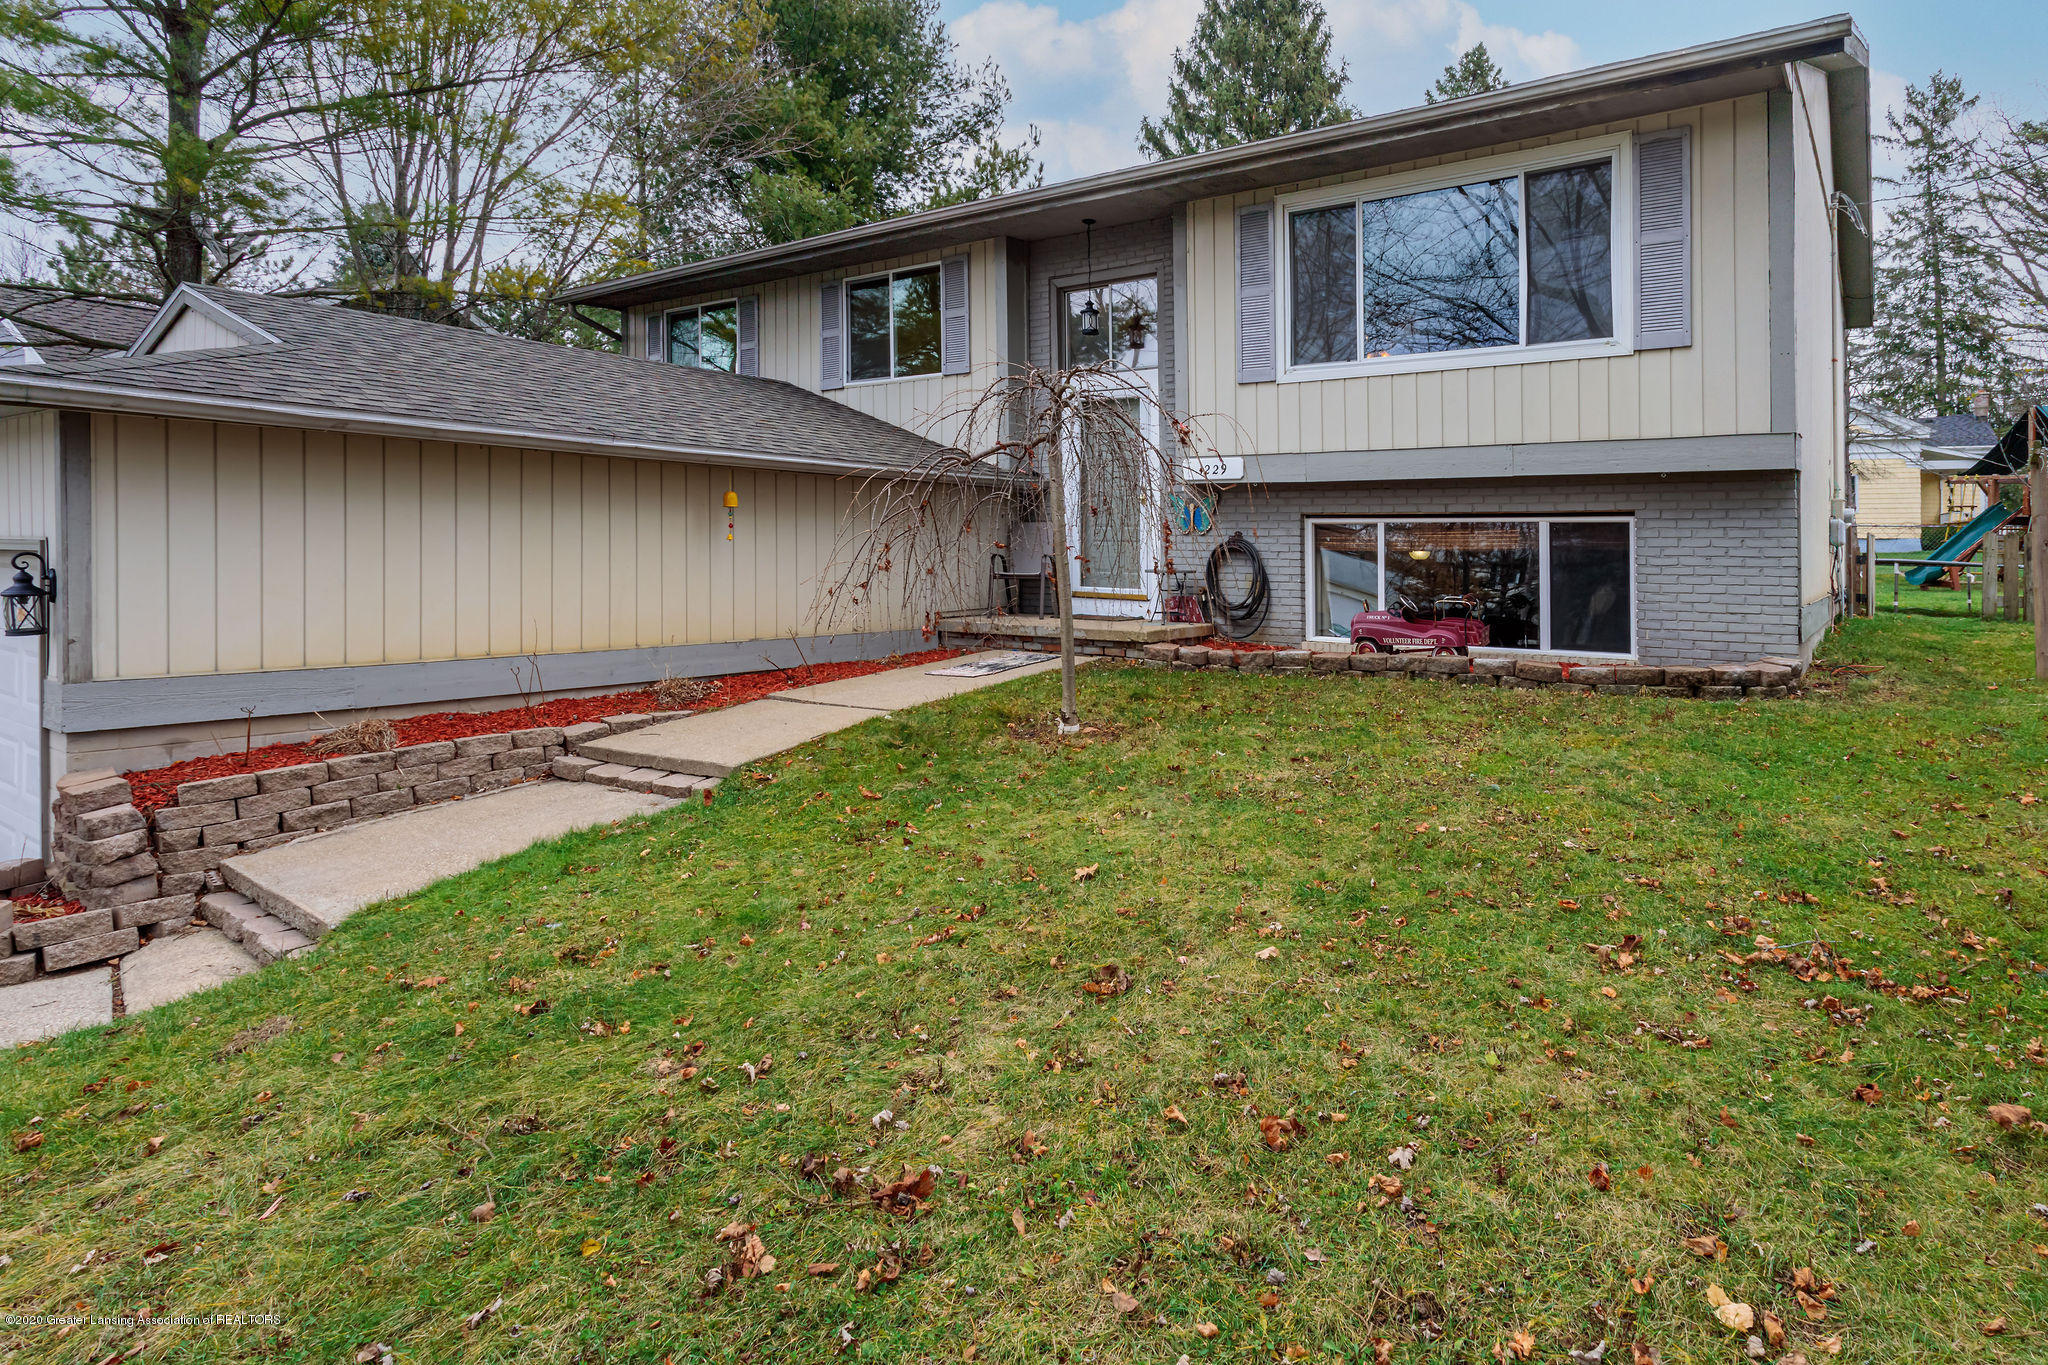 1229 Redpole Dr - Front/Curbside - 1